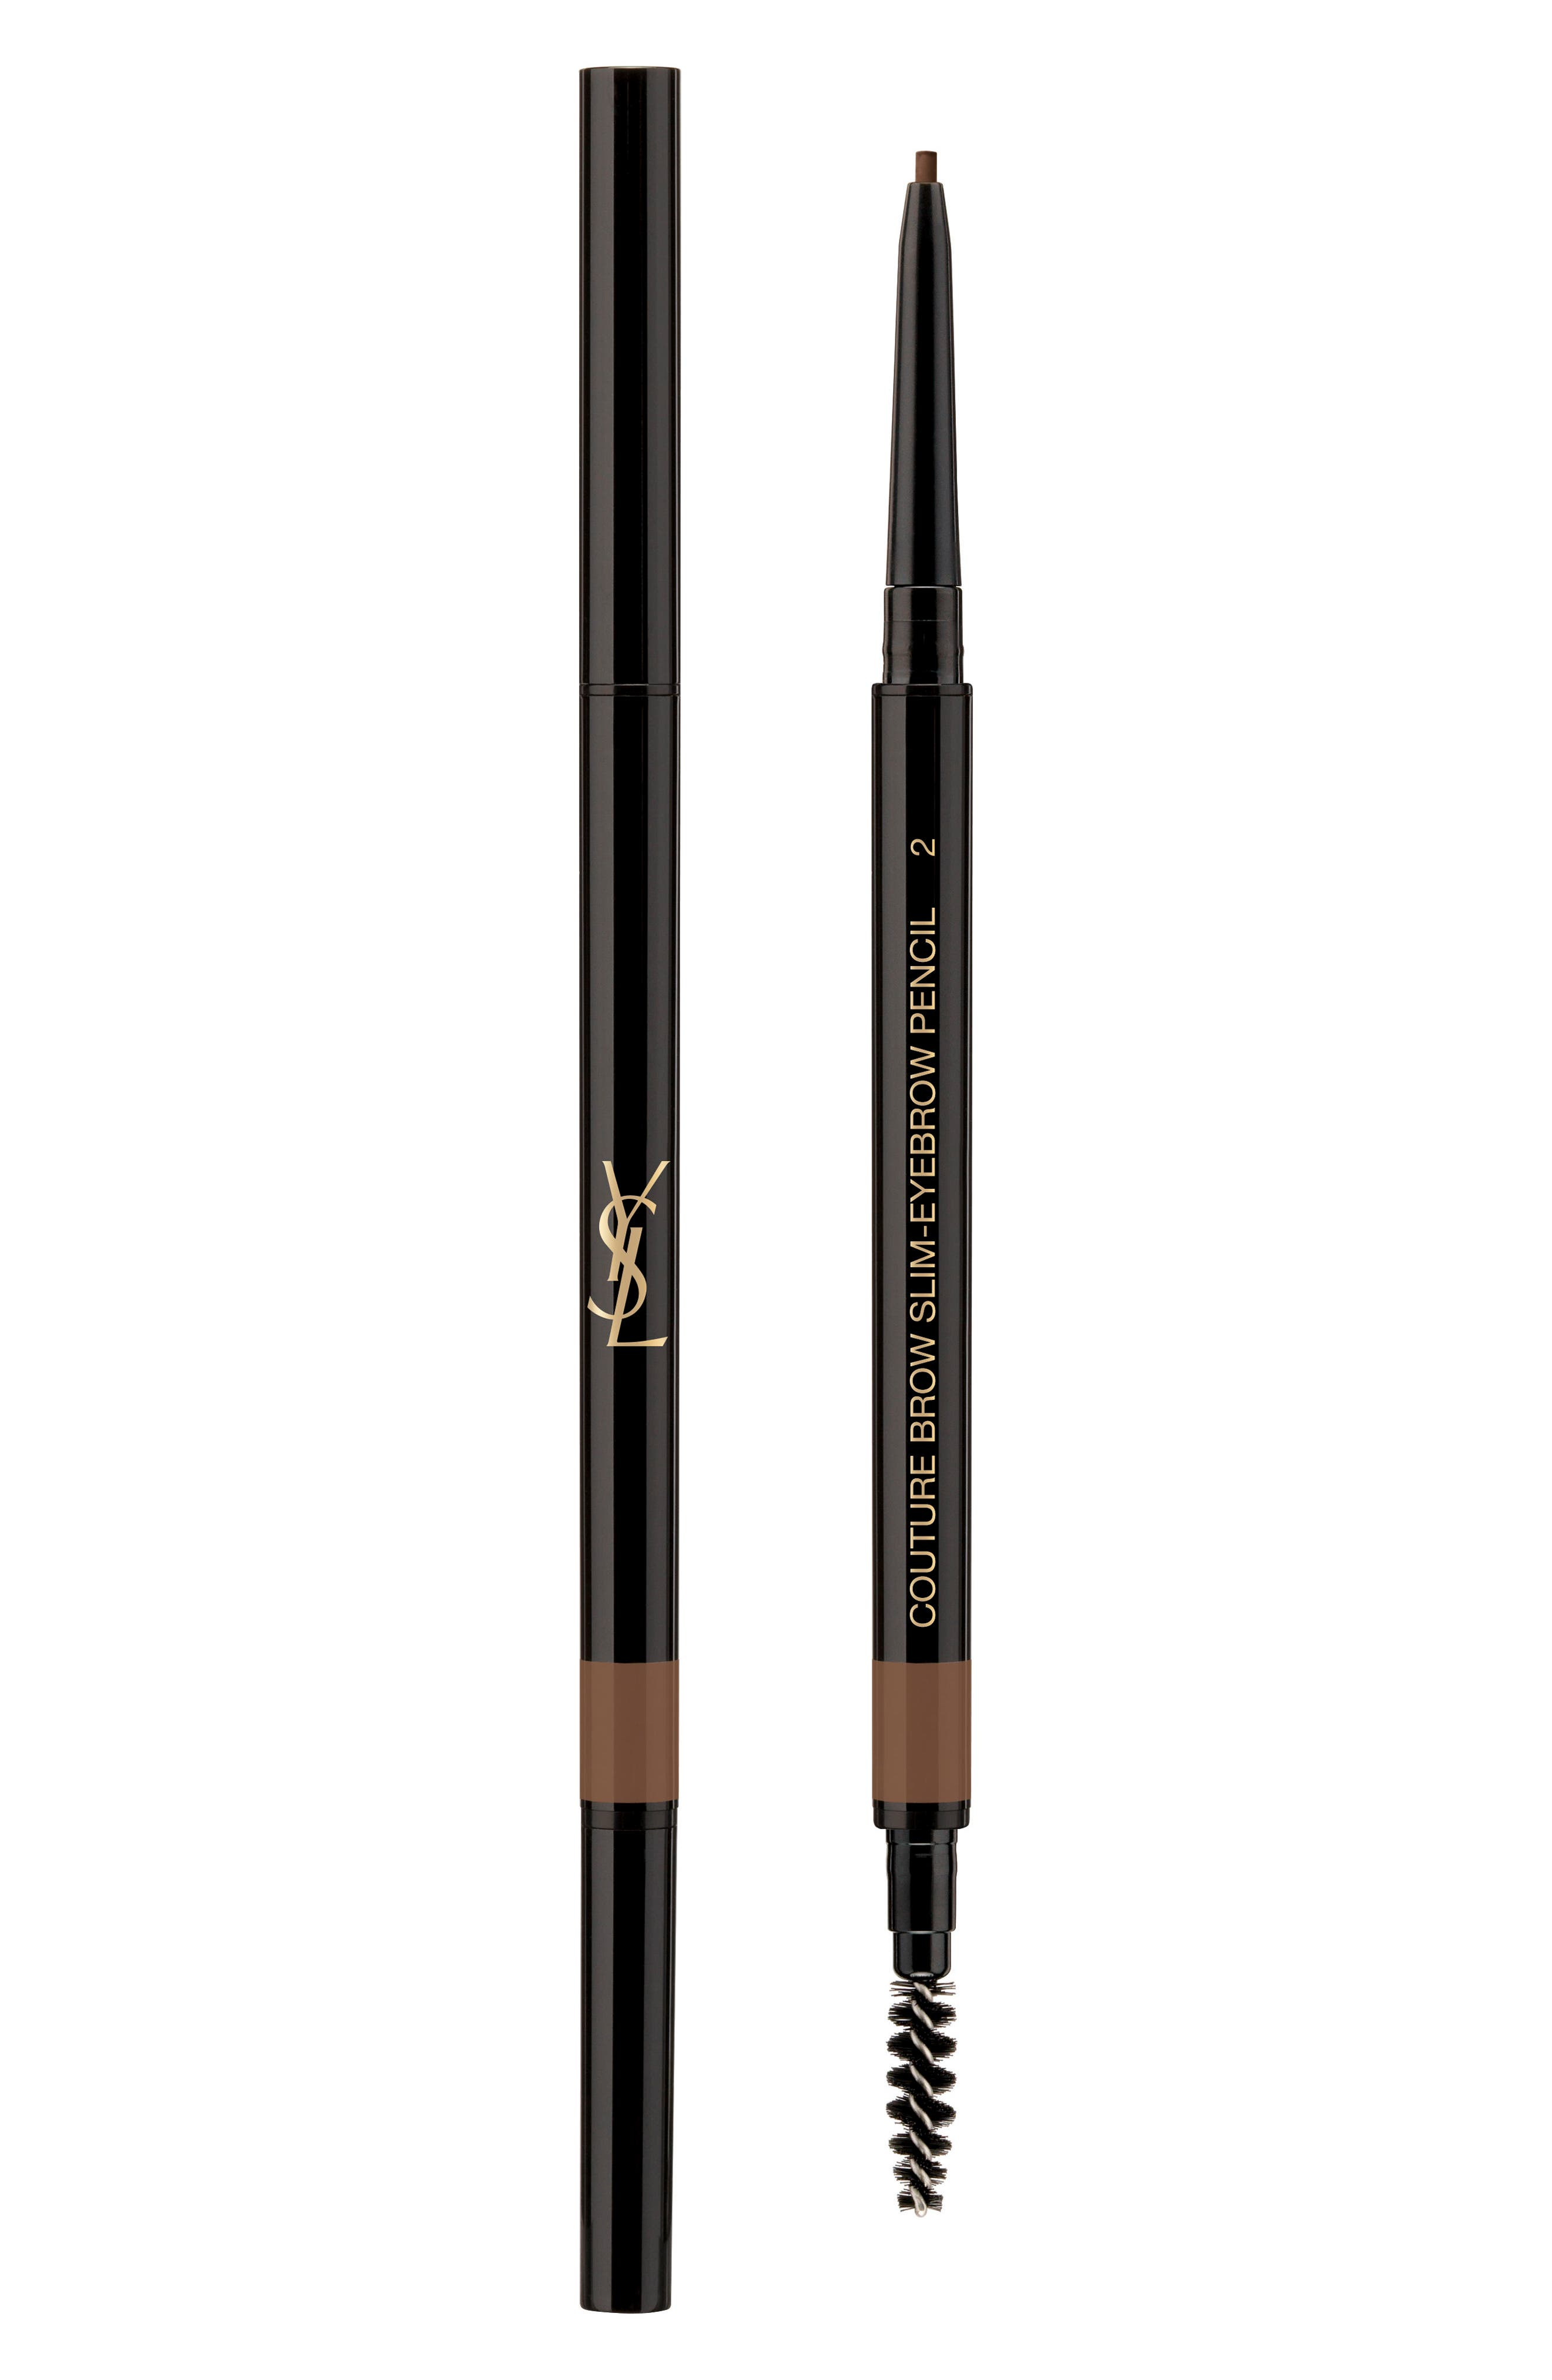 Yves Saint Laurent Couture Brow Slim Eyebrow Pencil - 02 Natural Brown